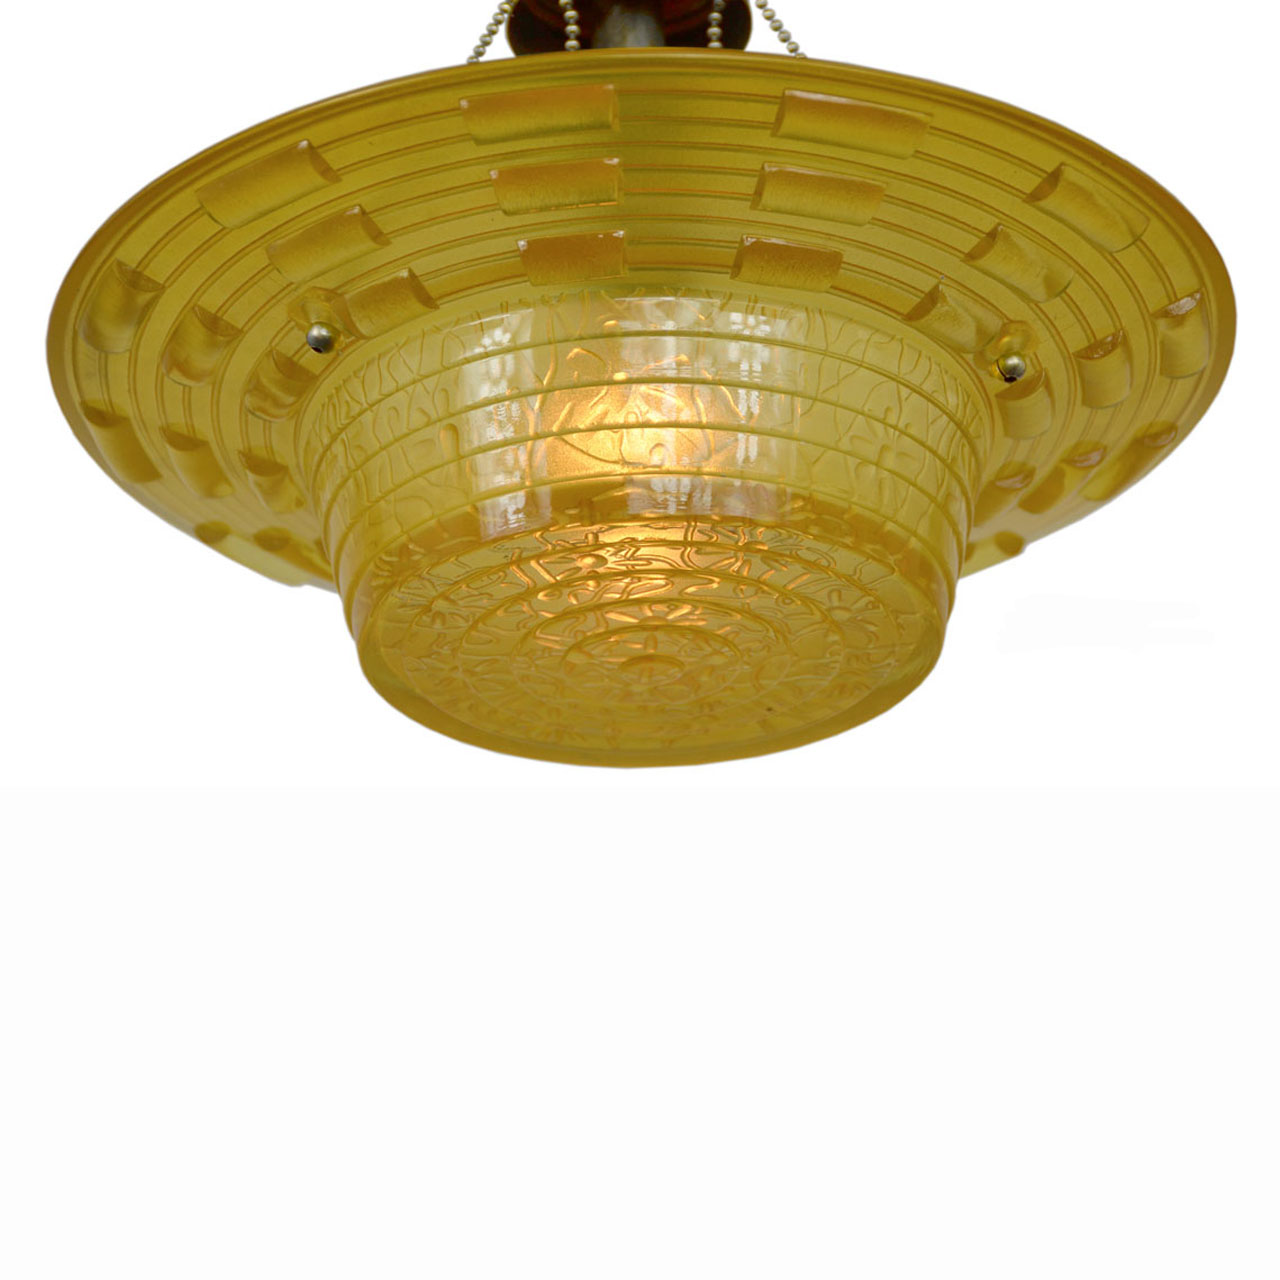 Antique Amber Glass Art Deco Bowl Shade Ceiling Light